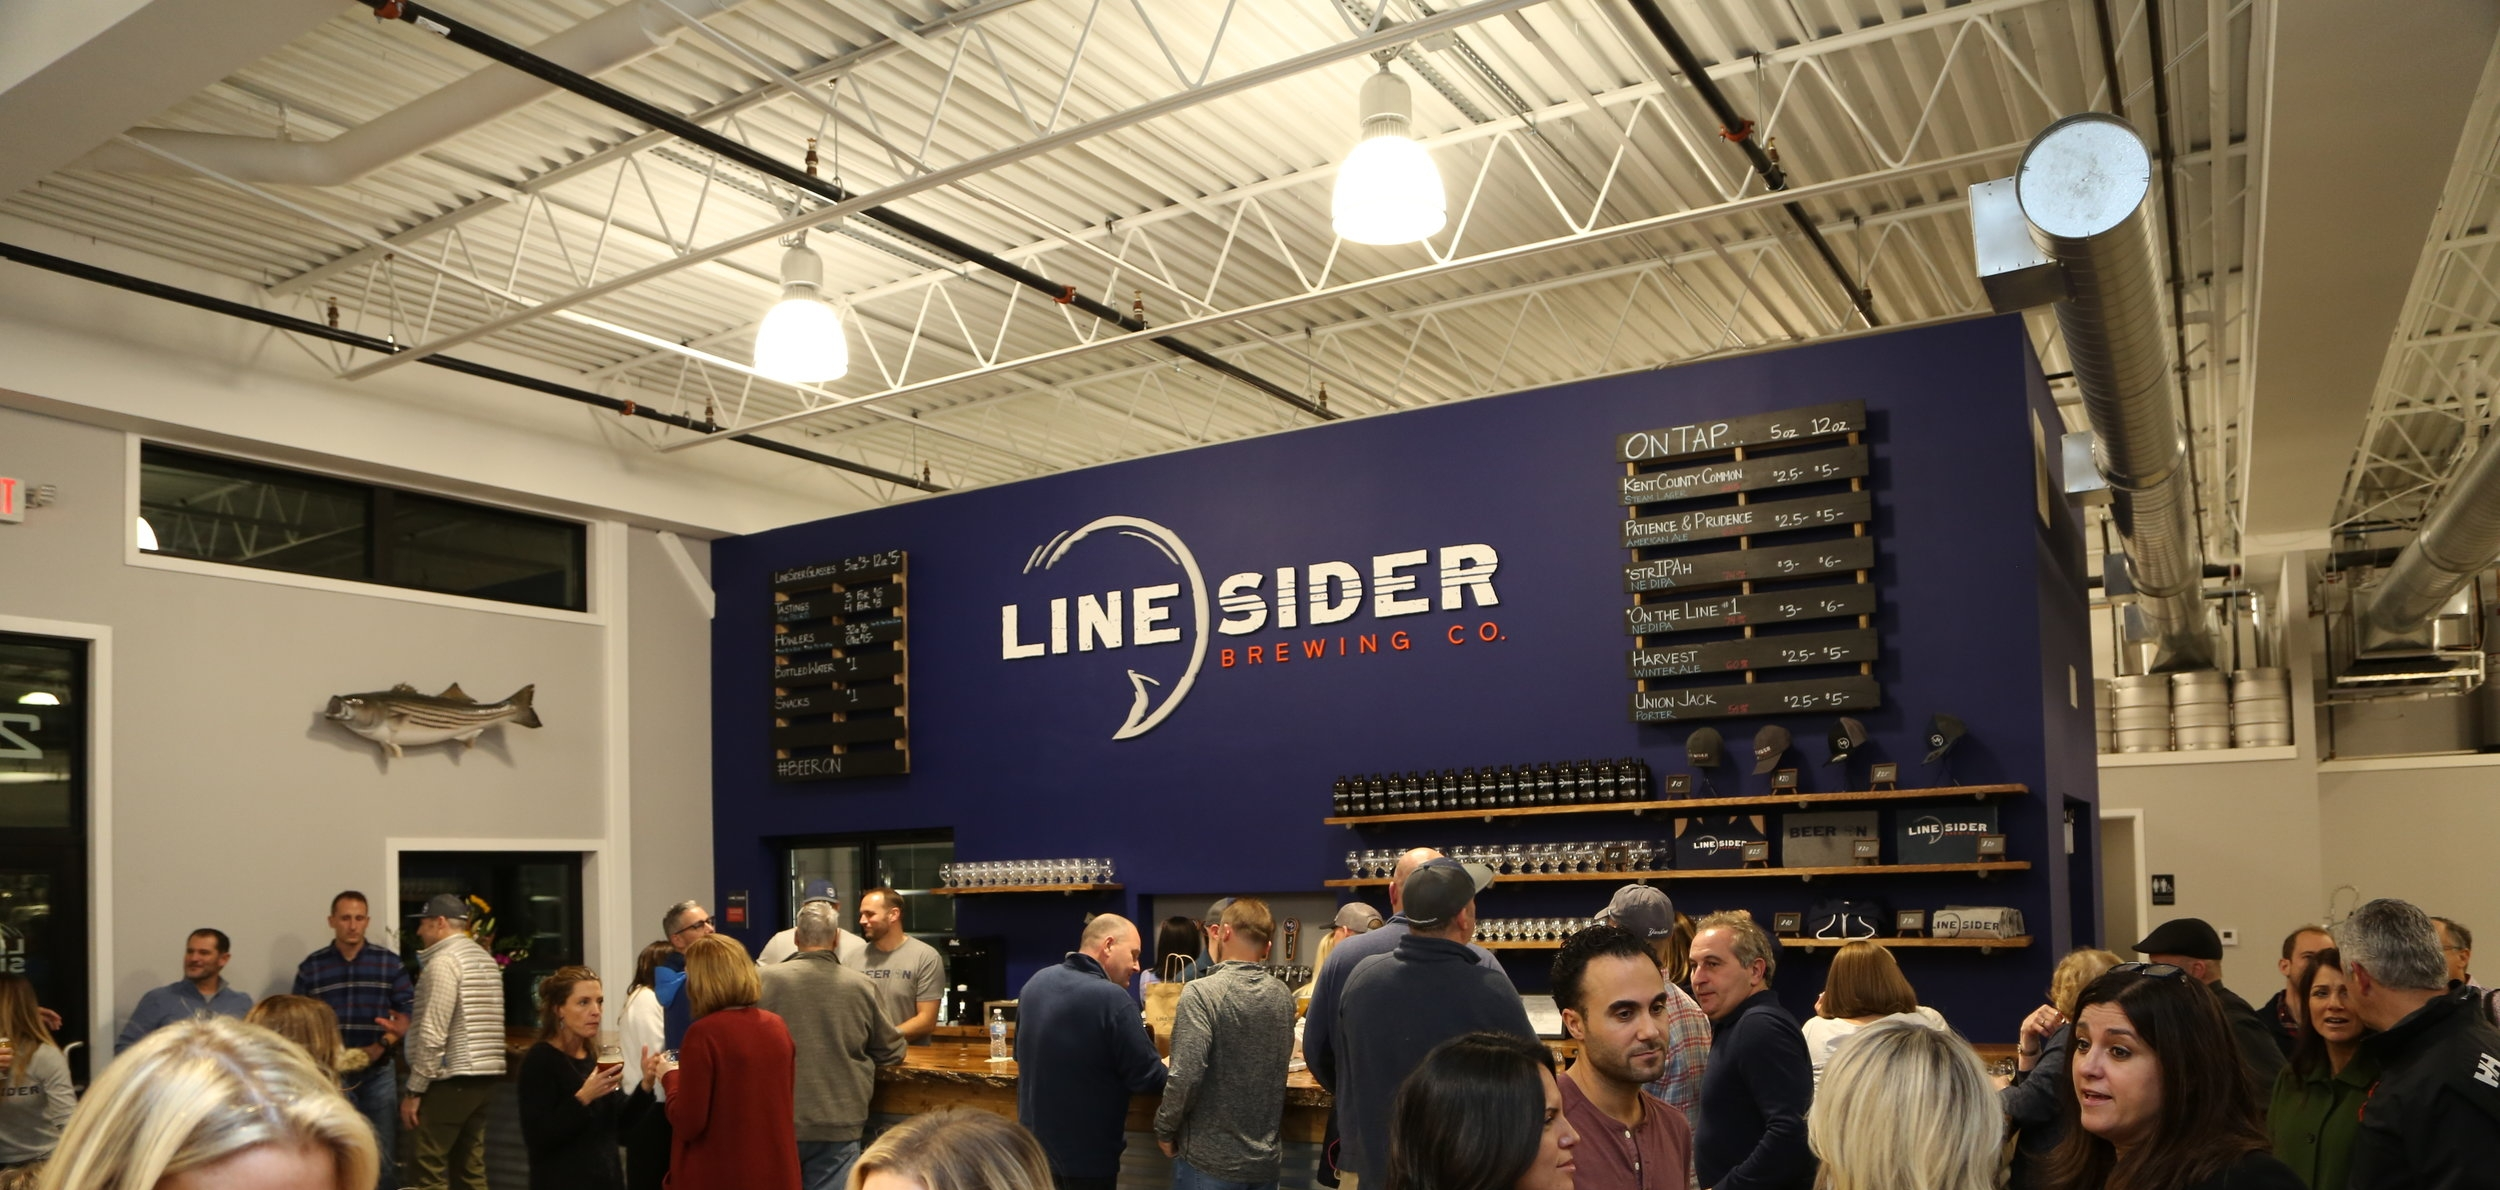 LineSider Brewing Company Tap Room - Craft Beer